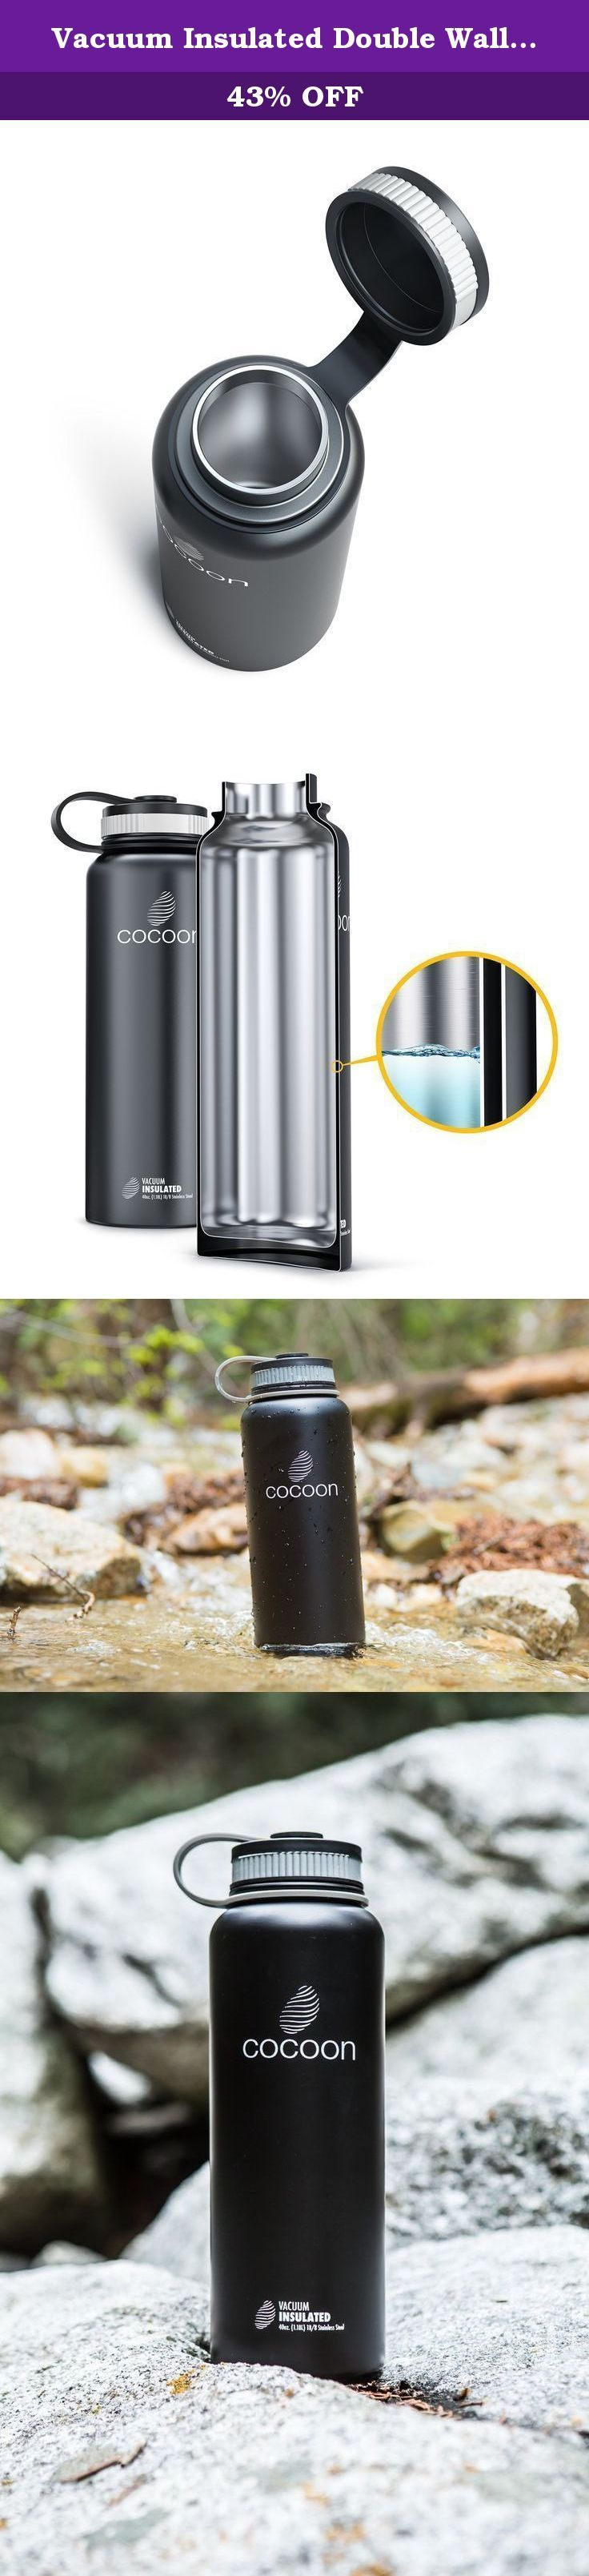 Vacuum Insulated Double Wall 40 oz Stainless Steel Water Bottle by Cocoon. Like a Cocoon, this stainless steel water bottle will keep your hot drinks piping hot and your cold drinks ice cold for hours and hours... and hours. Say goodbye to warm drinks that taste like plastic and cold coffee, hot cocoa or soup that is anything but hot. This is made possible using cutting edge manufacturing processes and superior quality control to ensure every Cocoon will last for years. Don't ever worry...